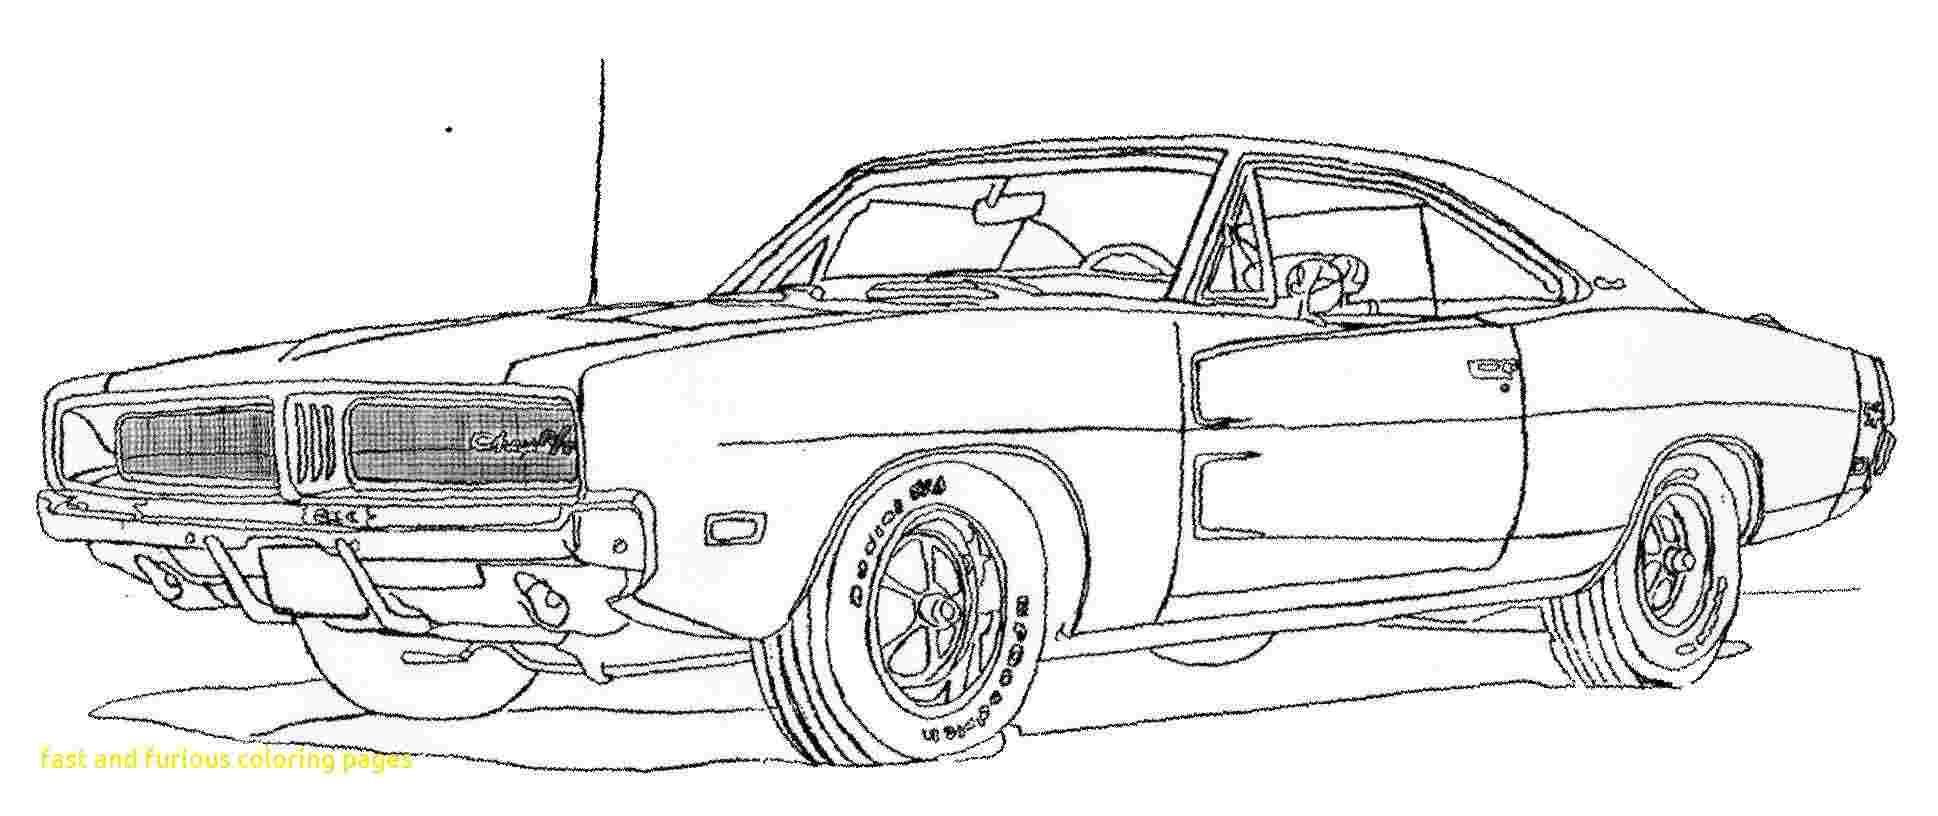 Fast And Furious Dodge Charger Coloring Pages In Early 2000 Actor Paul Walker Had Wrapped U Dodge Charger Dodge Cars Coloring Pages